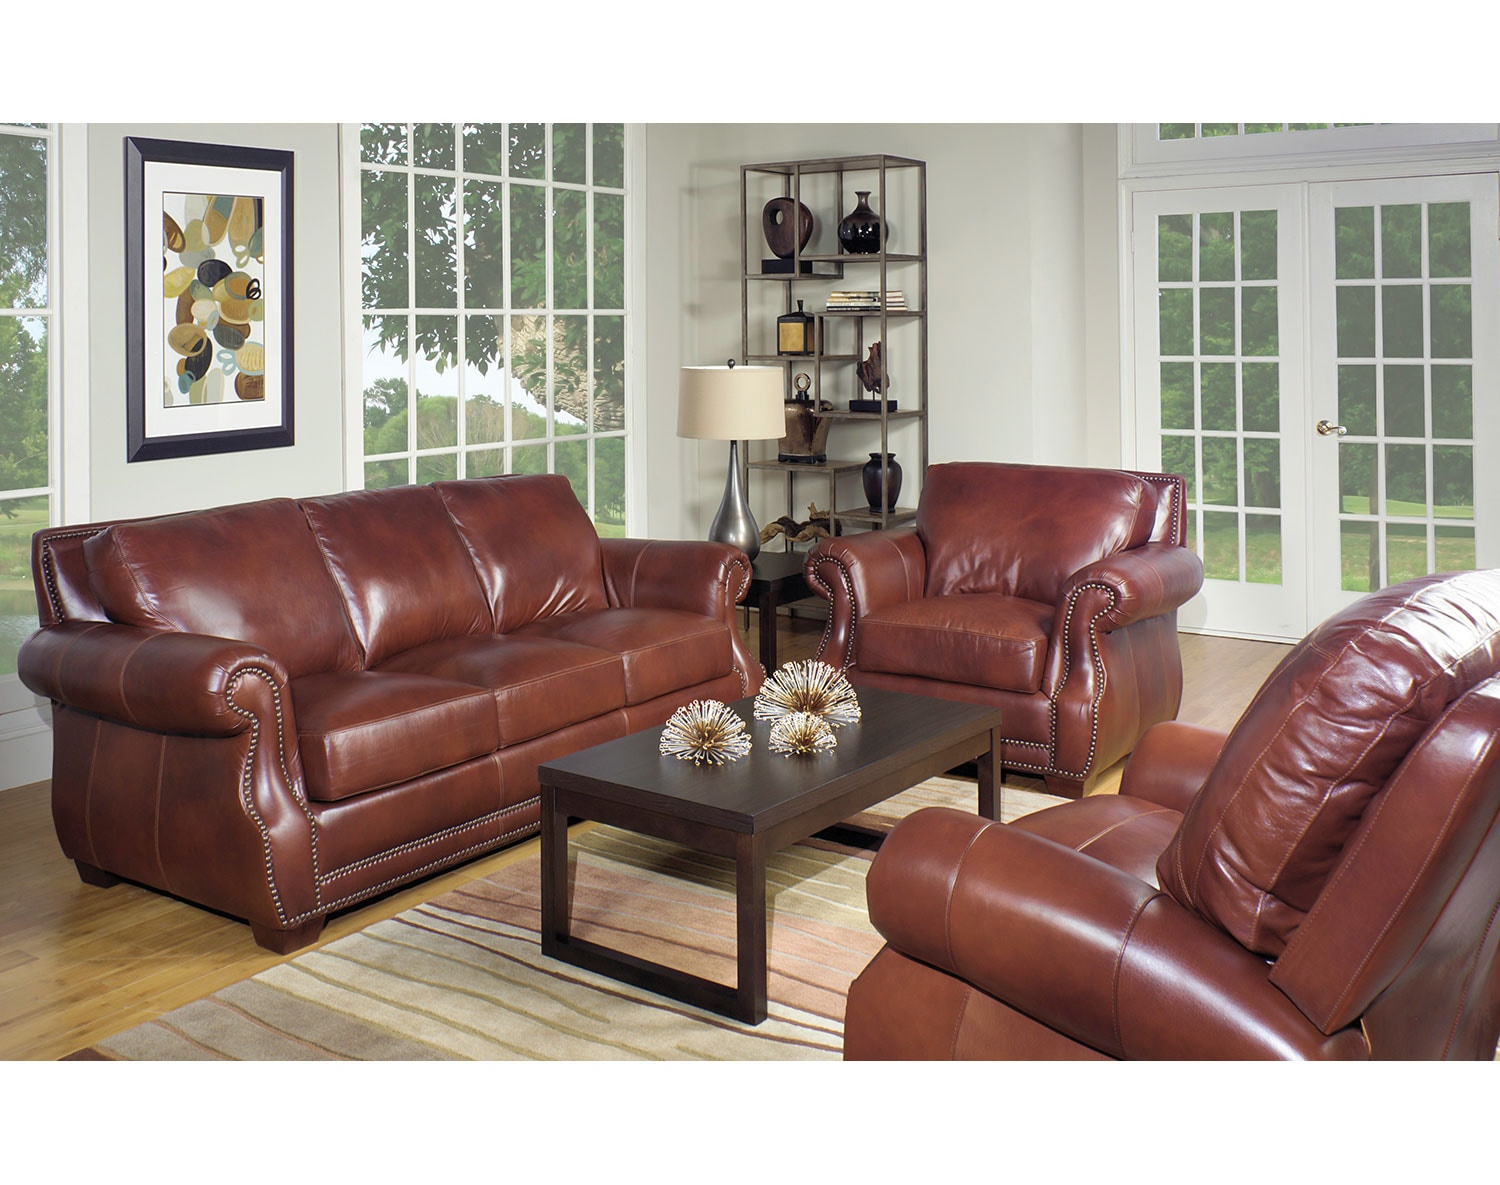 Rent A Center Living Room Set Living Room Levin Furniture